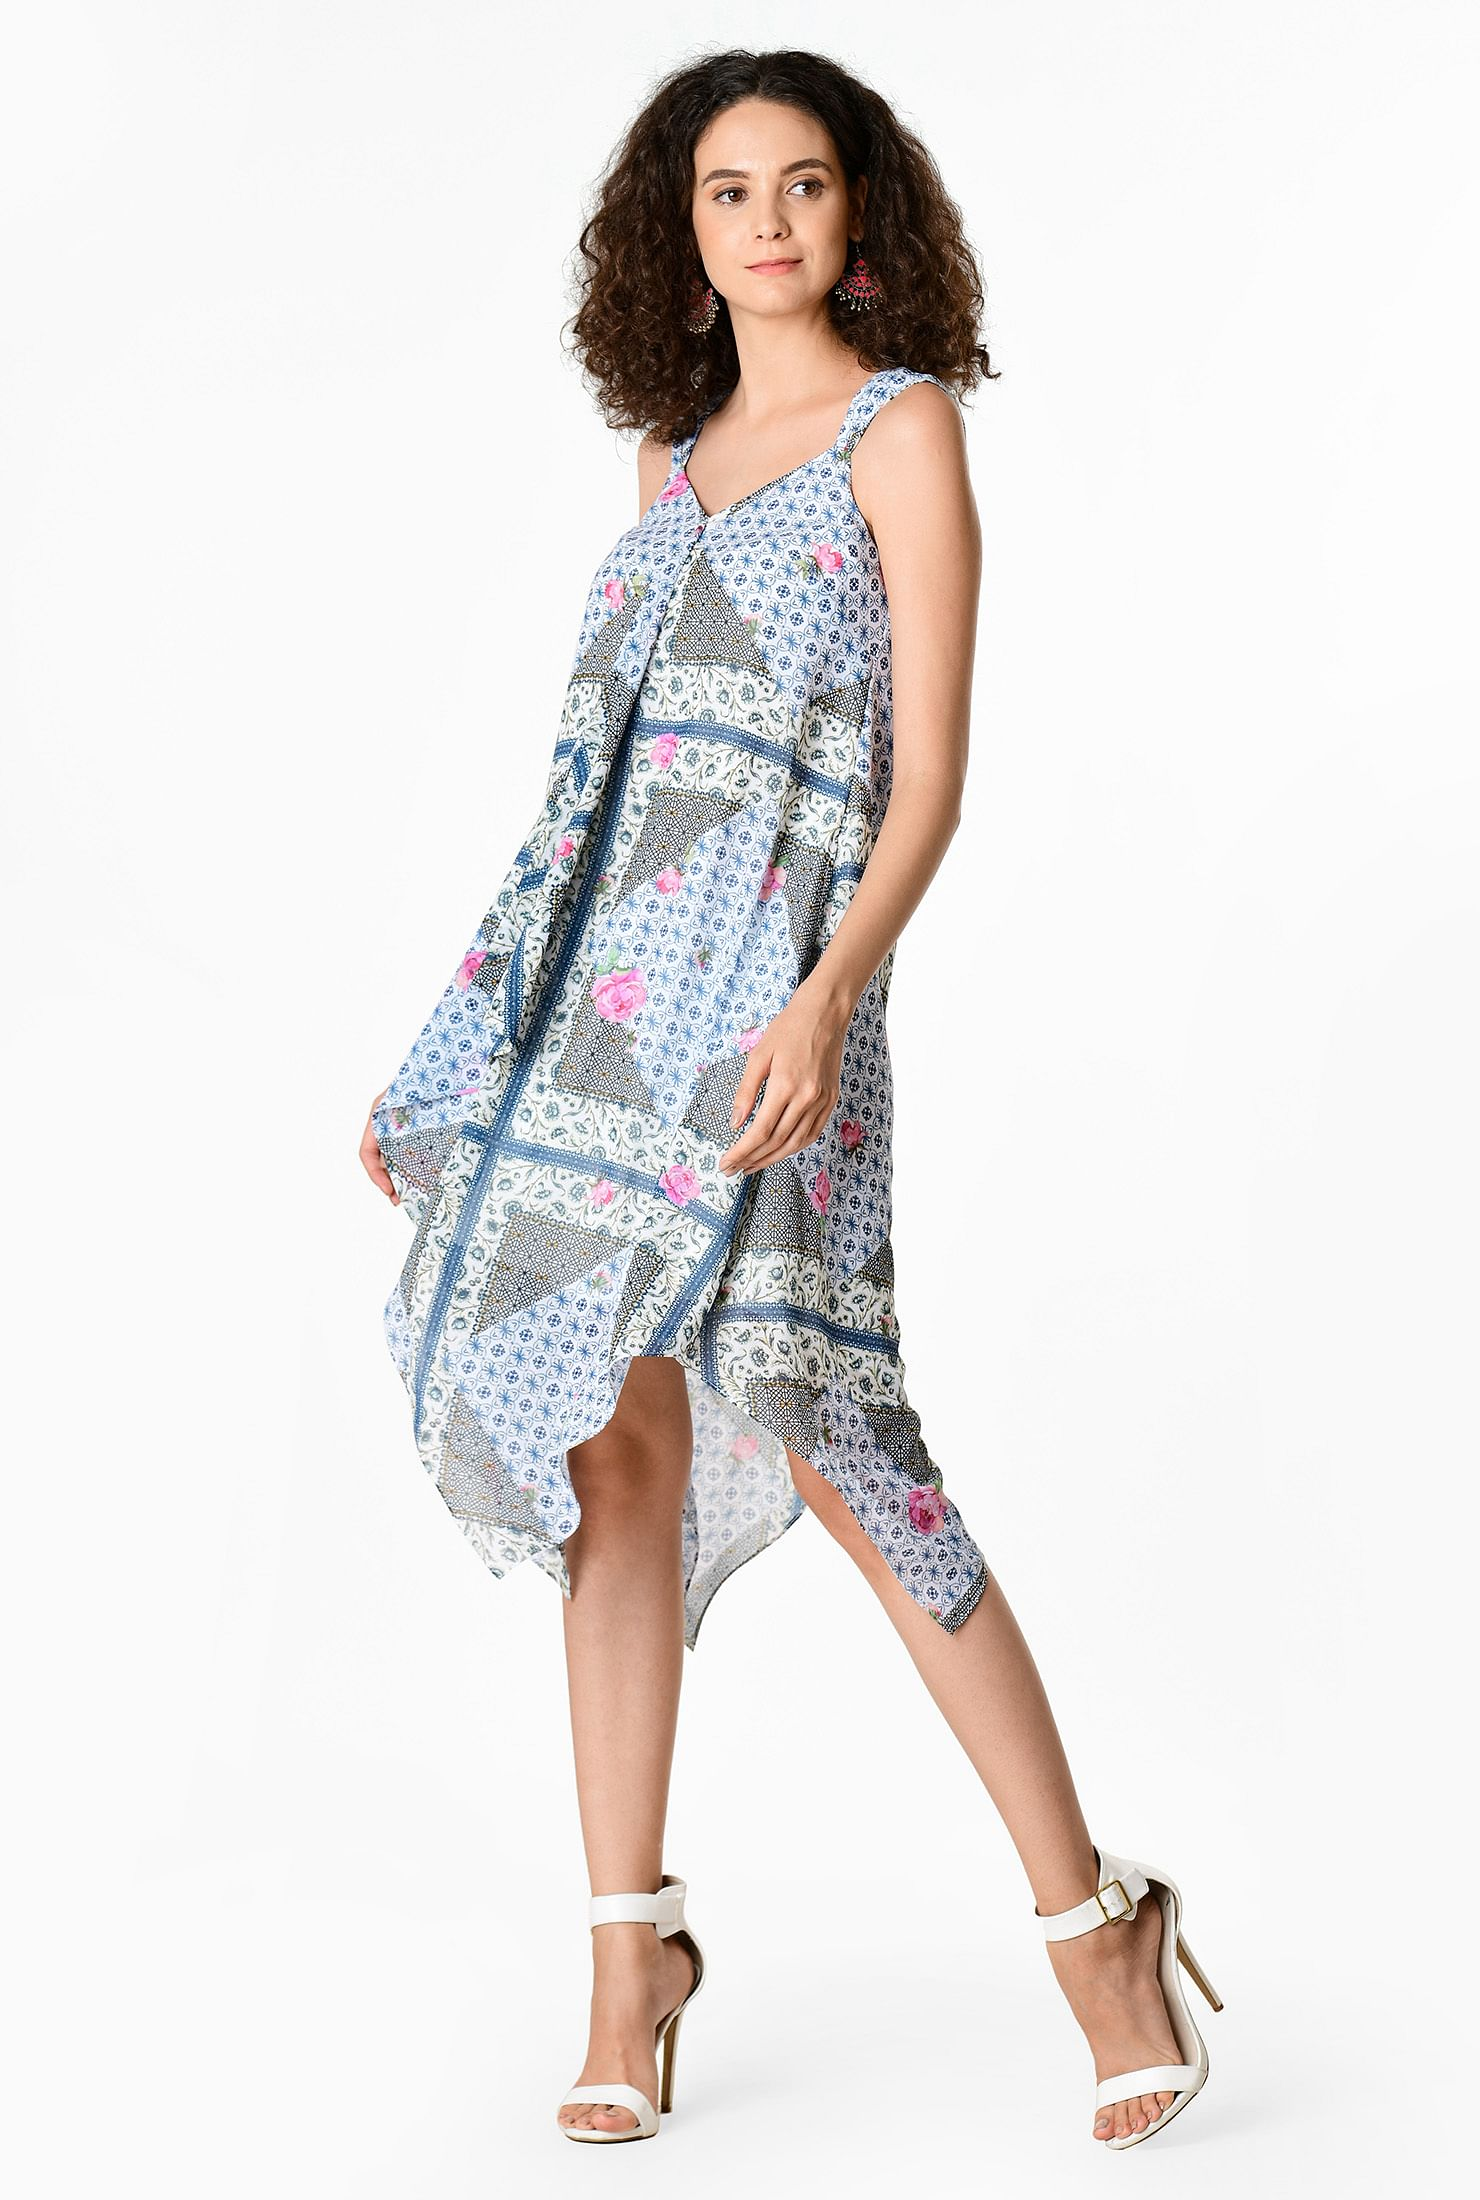 The Scarf Print Georgette Hanky Hem Trapeze Dress travel product recommended by Lindsay Wells on Lifney.